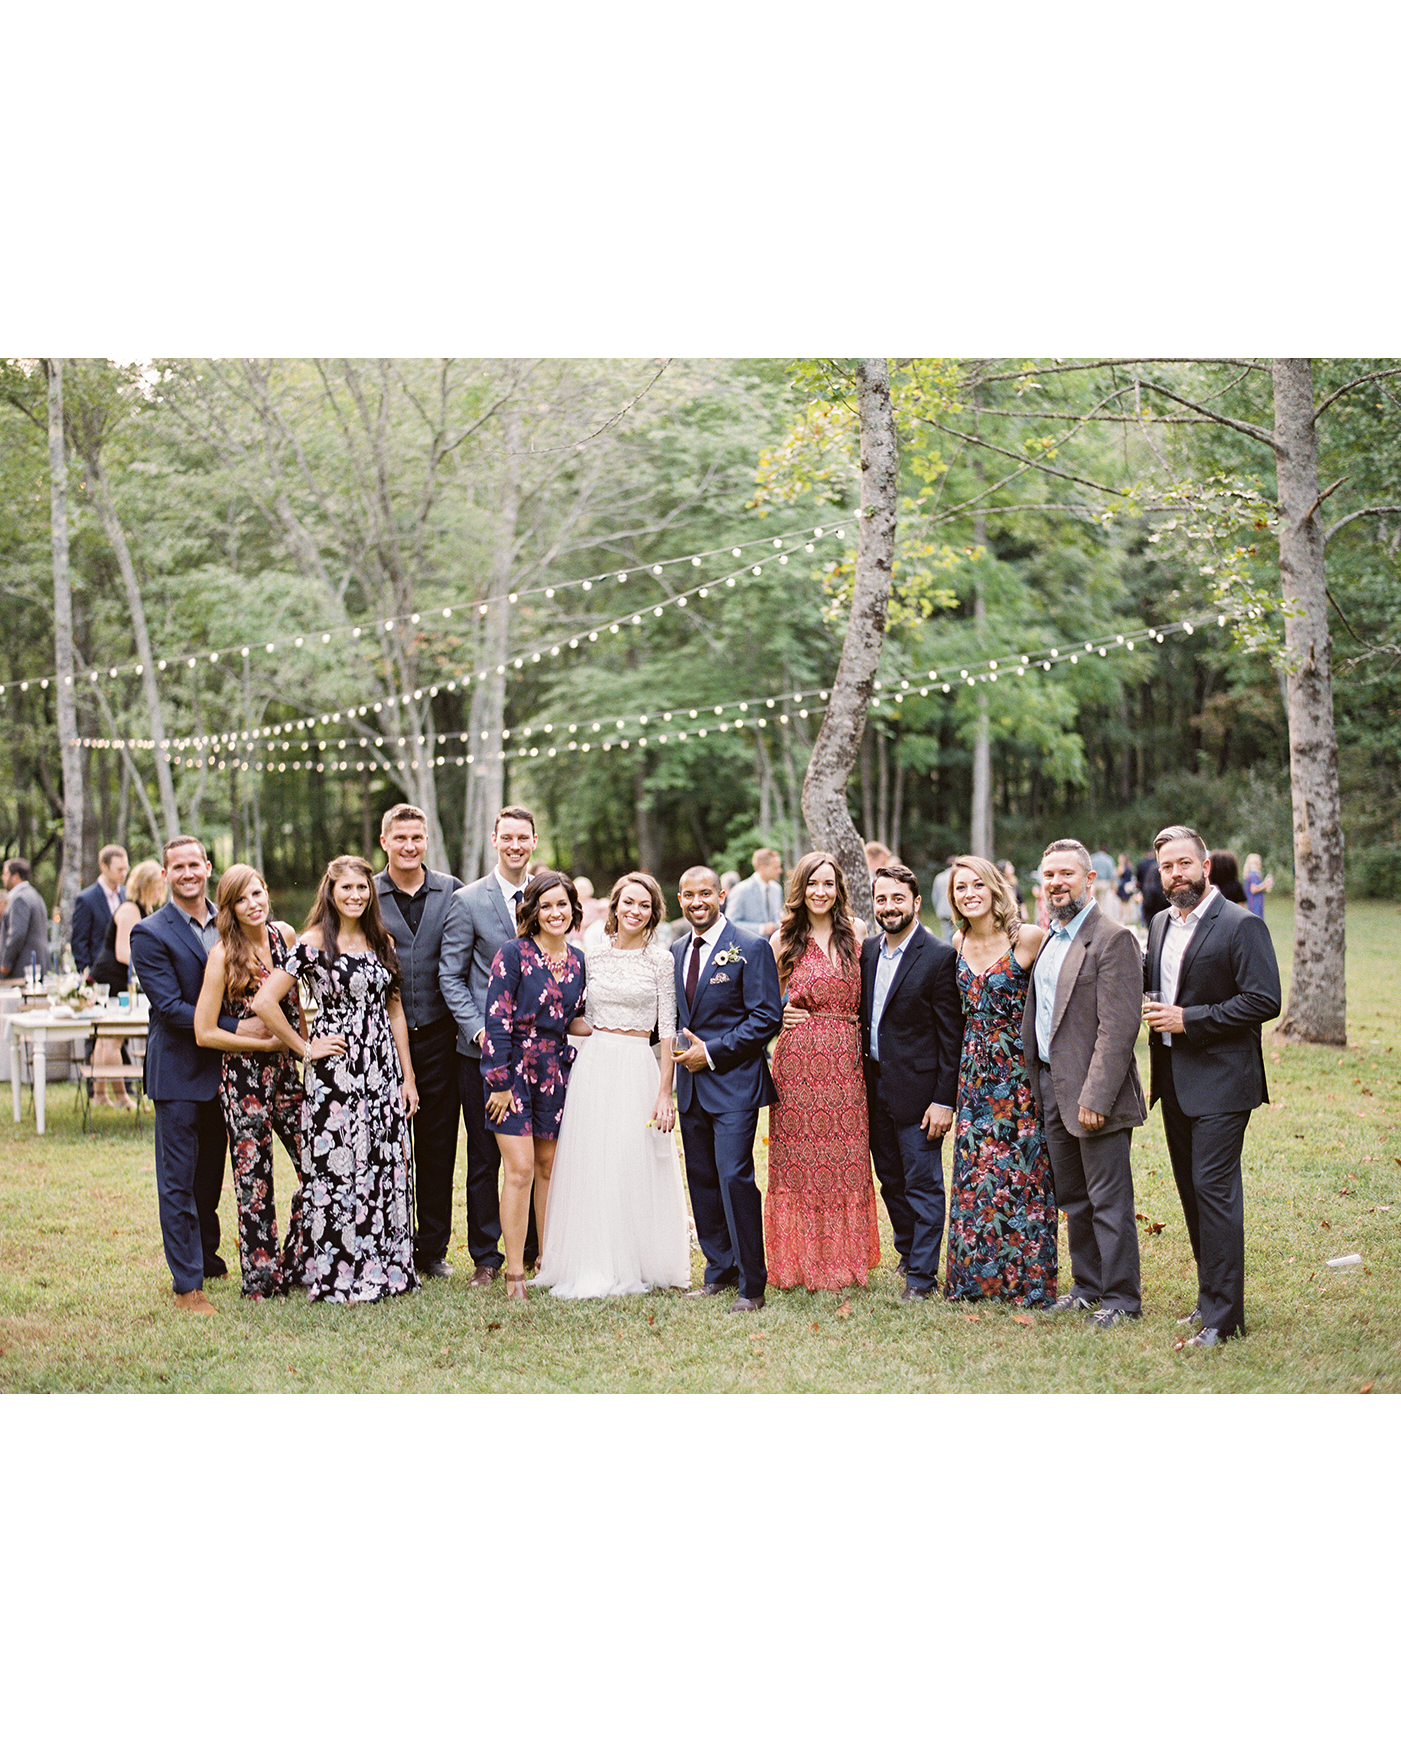 ashley and justin pose with wedding guests